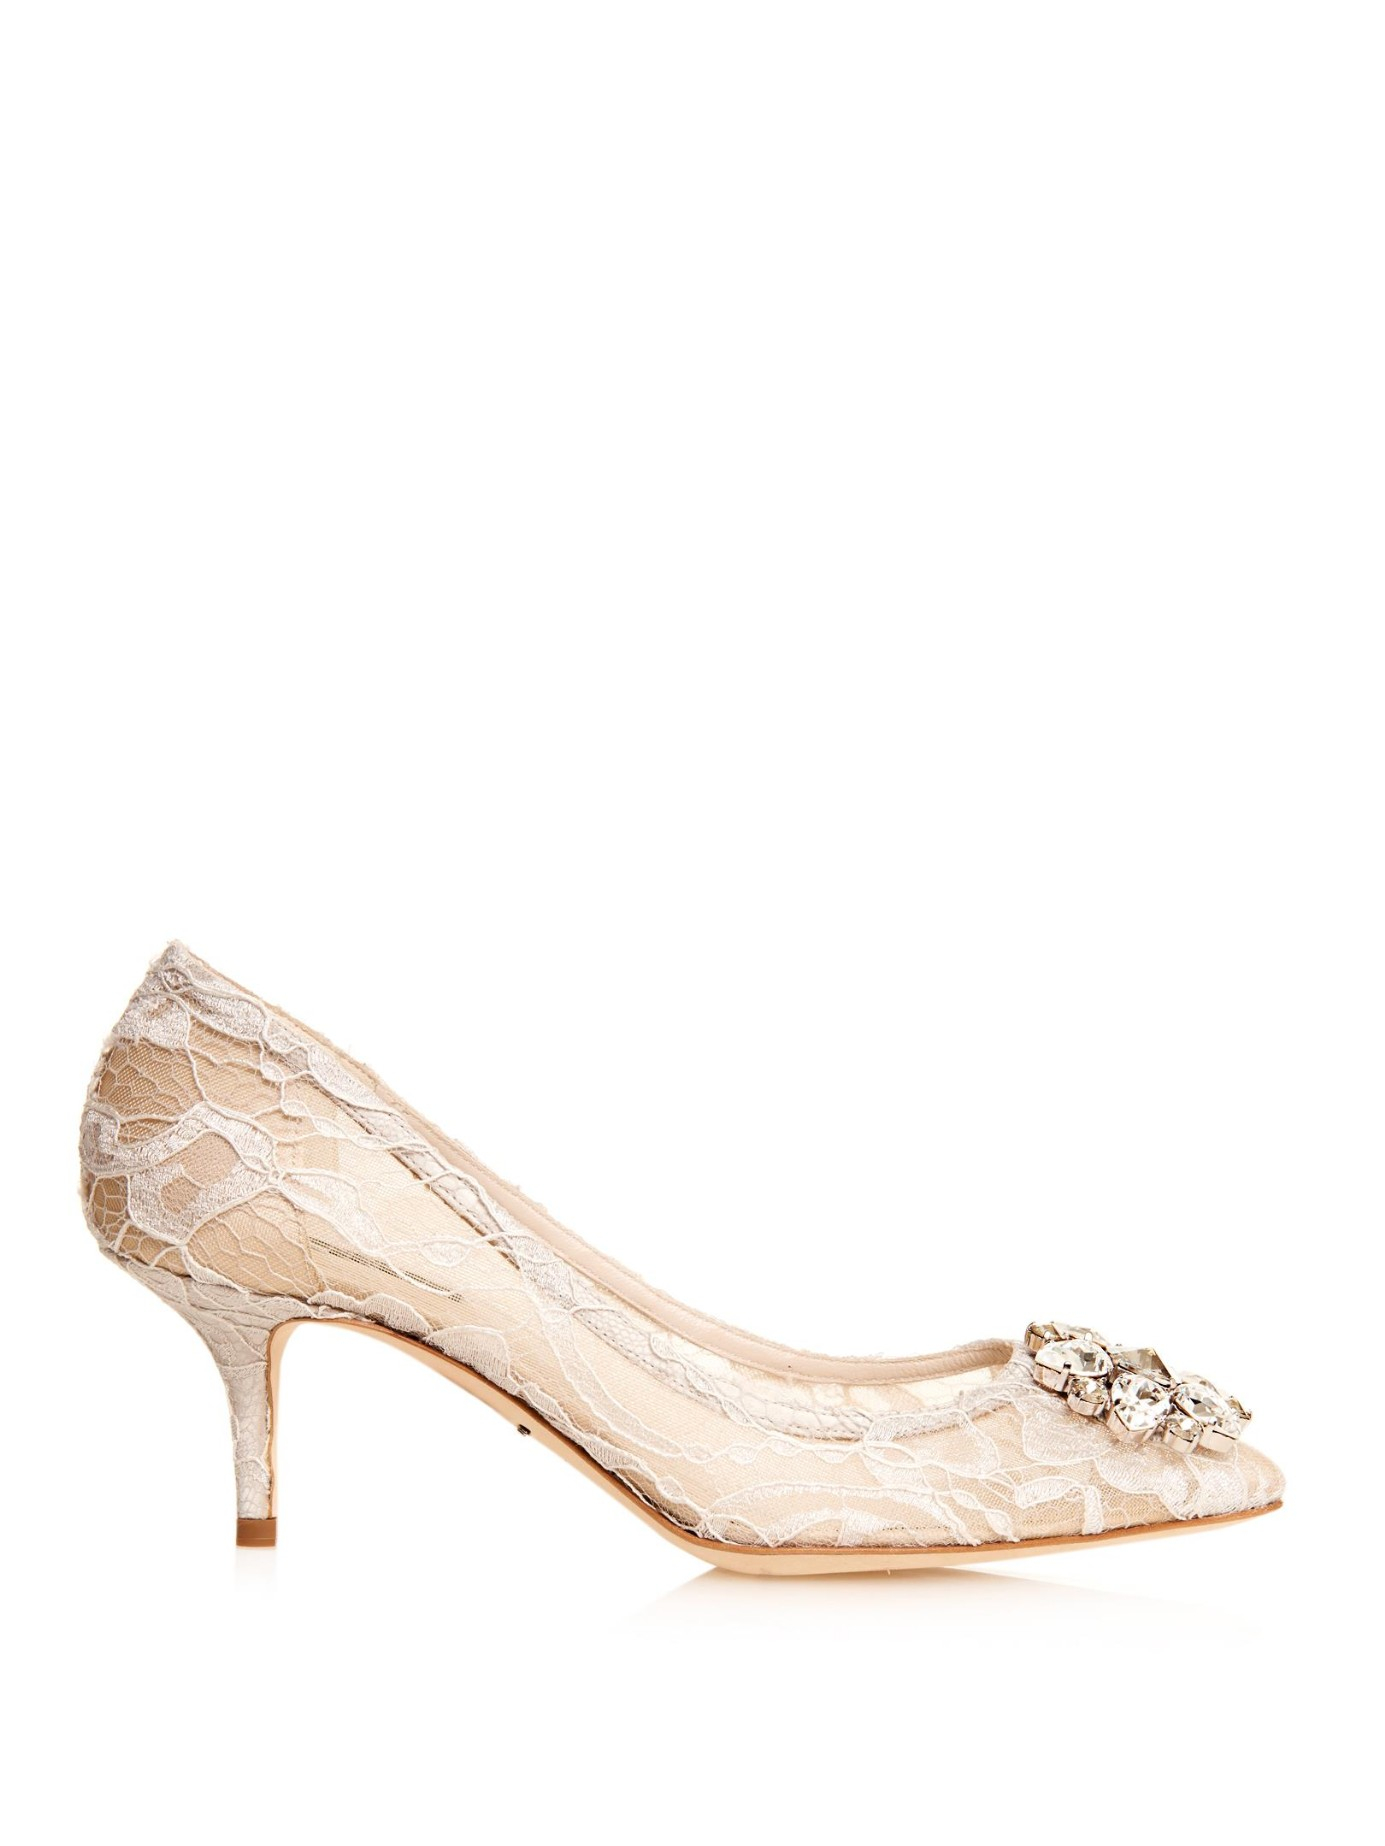 1260cafd55a Dolce   Gabbana Embellished Lace Pumps in Natural - Lyst